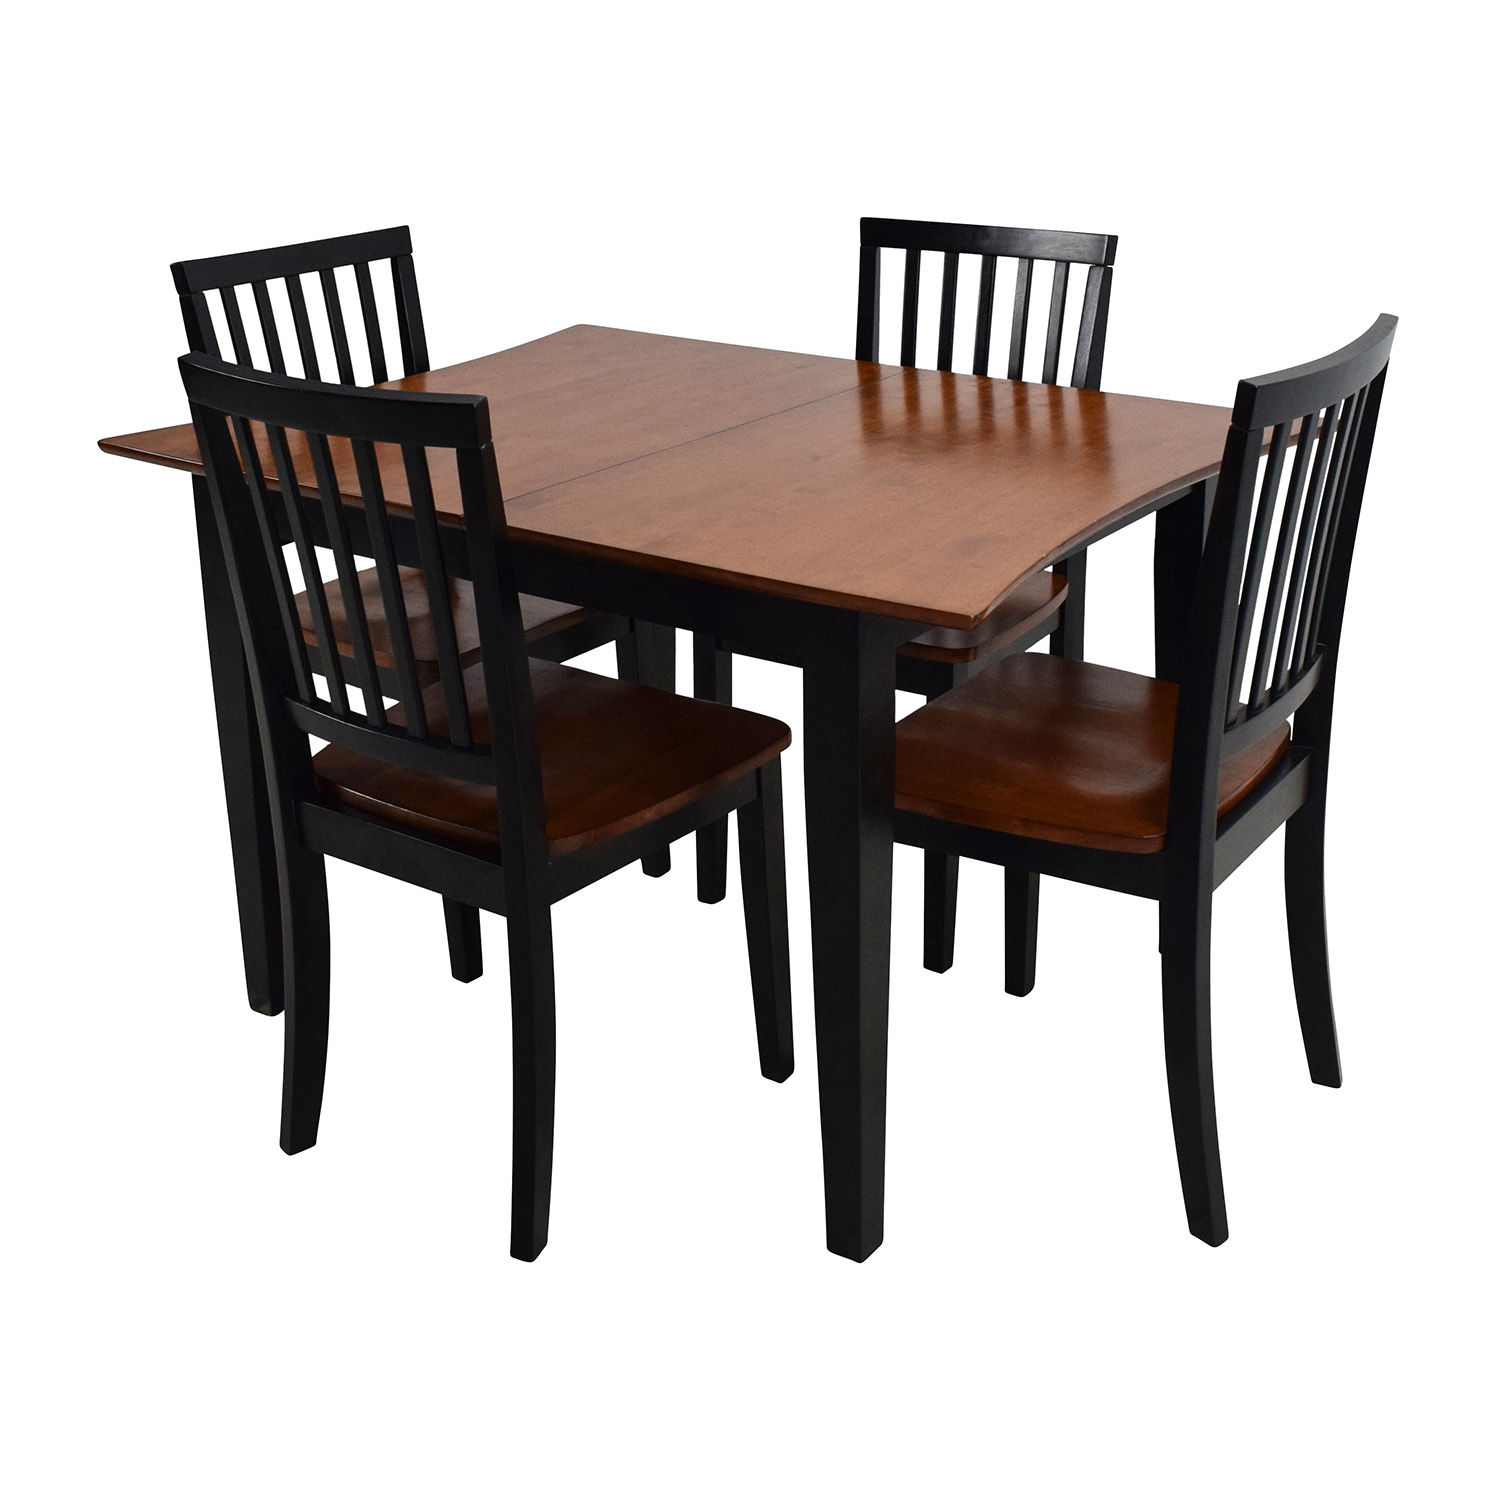 56 off bob 39 s discount furniture bob 39 s furniture for Cheap wholesale furniture